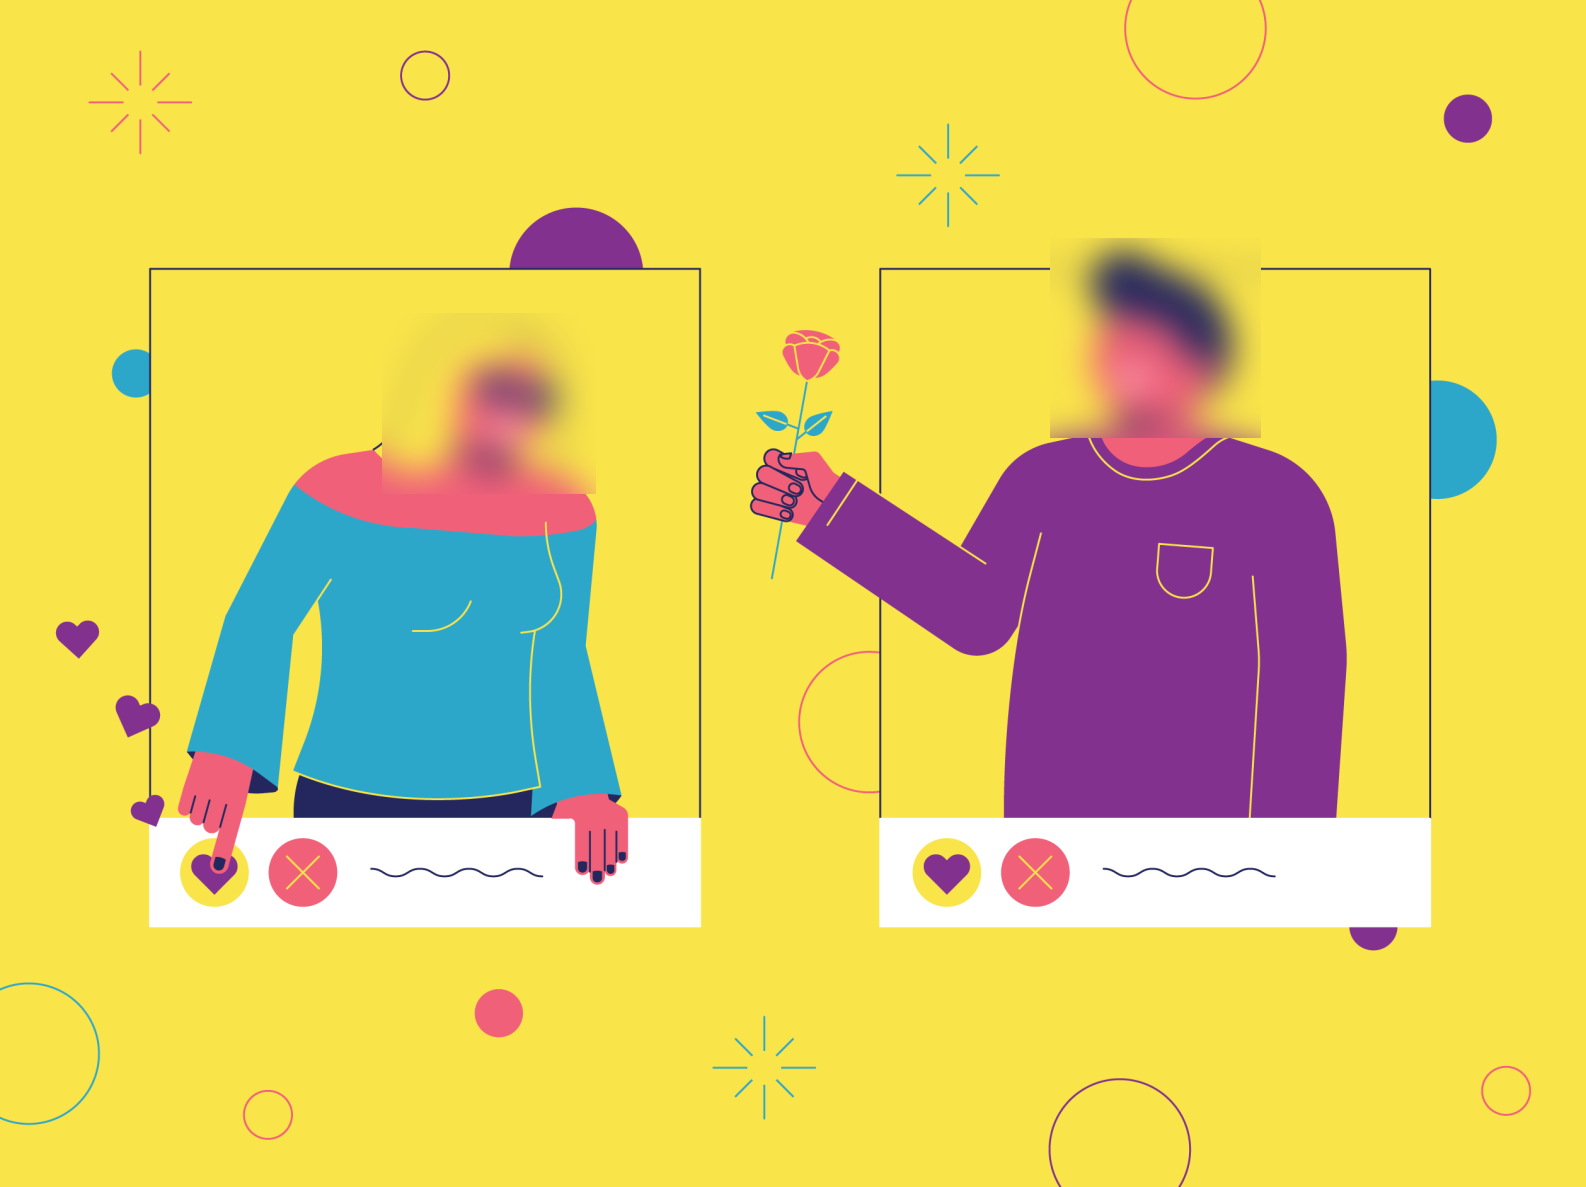 Dating app hides faces